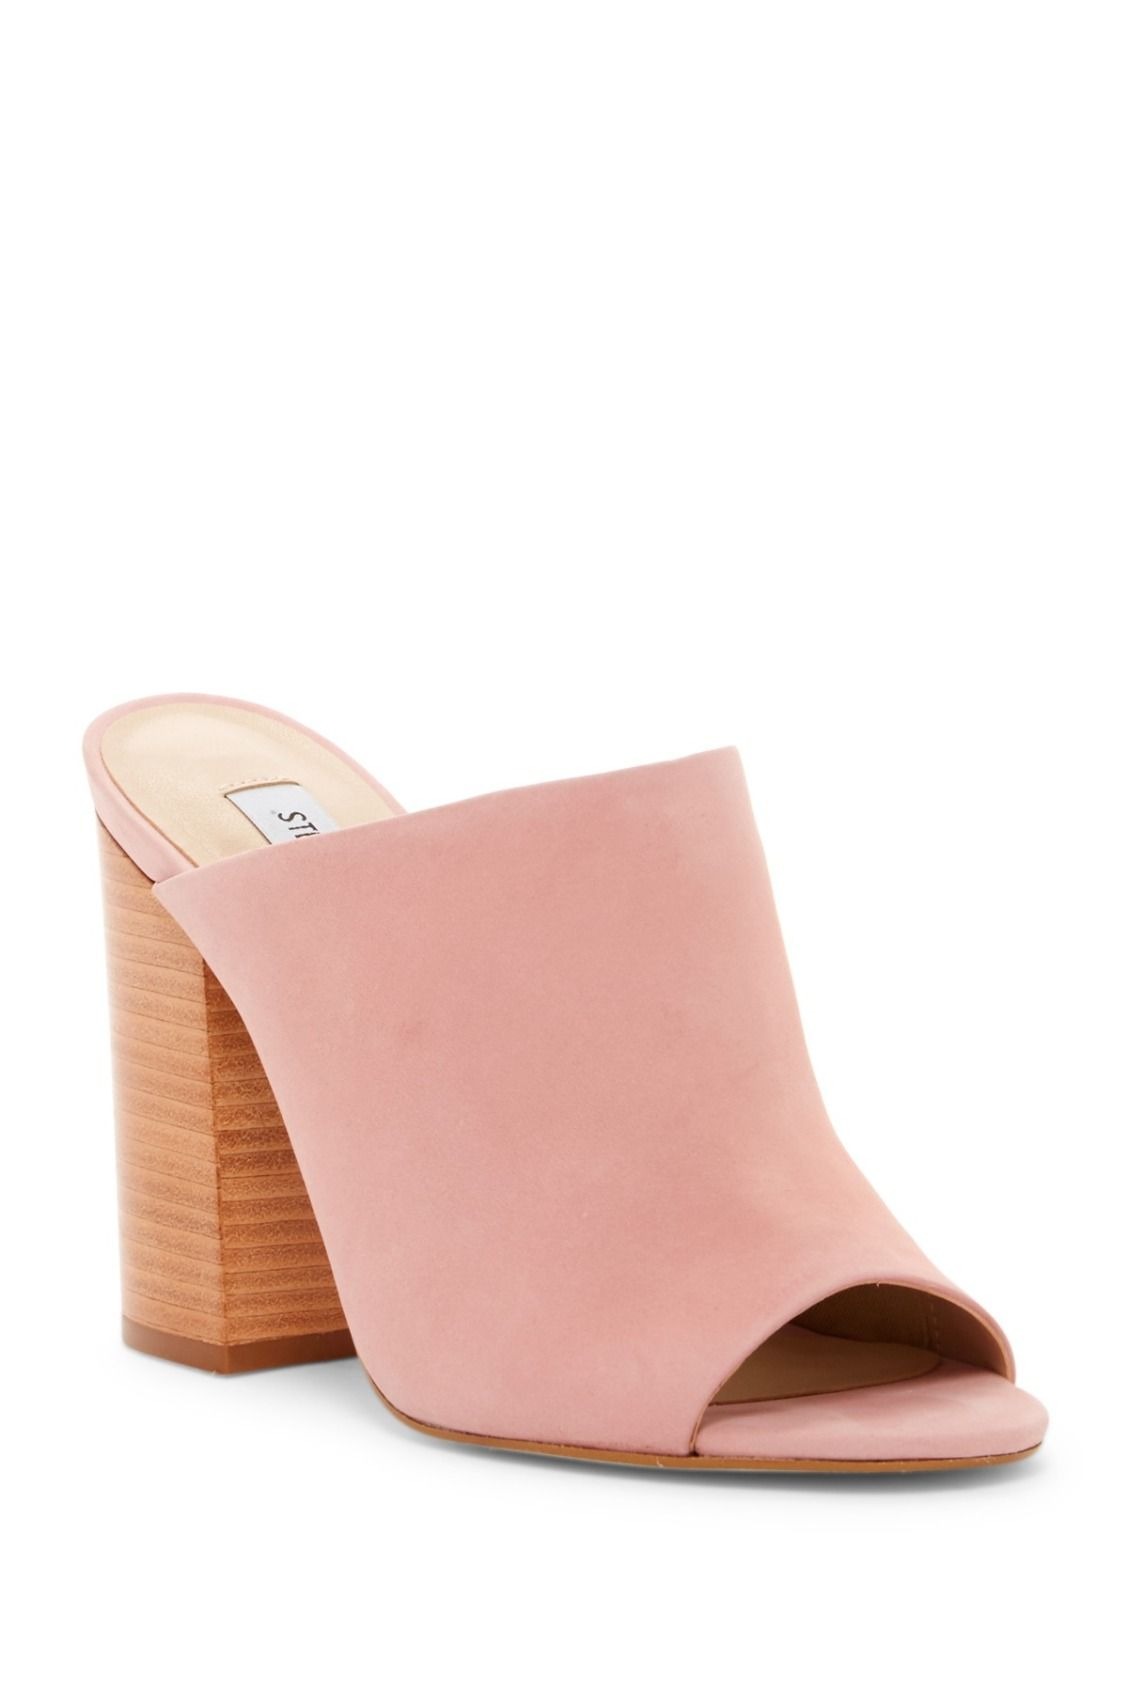 Pretty in pink! Steve Madden Skylar Open Toe Mules